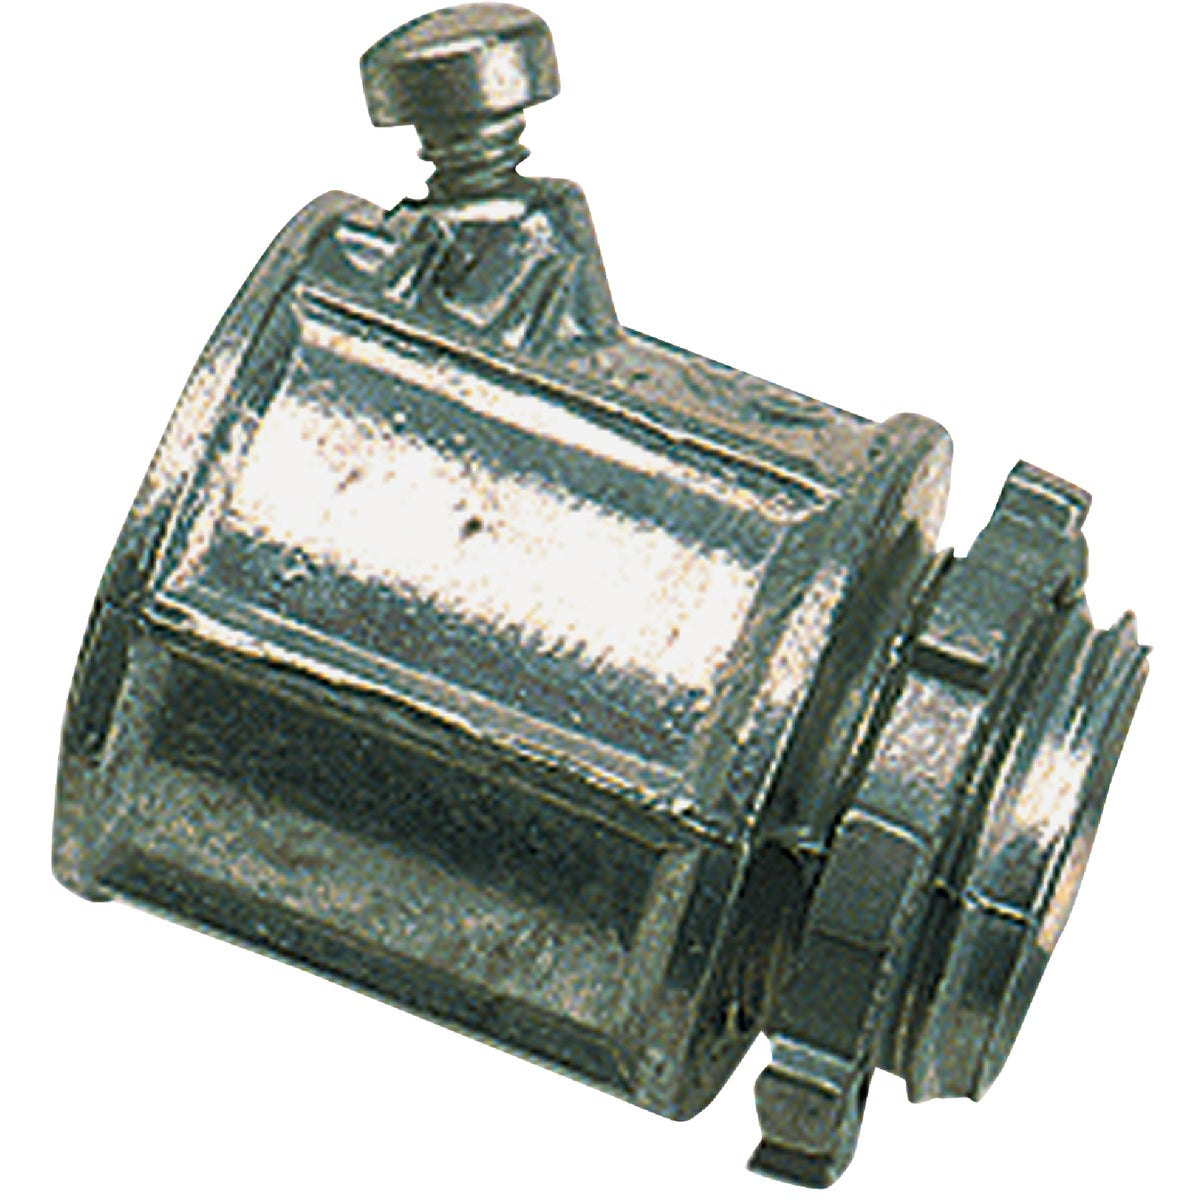 "1/2"" FLEX CONNECTOR - XC2211 by Thomas & Betts"